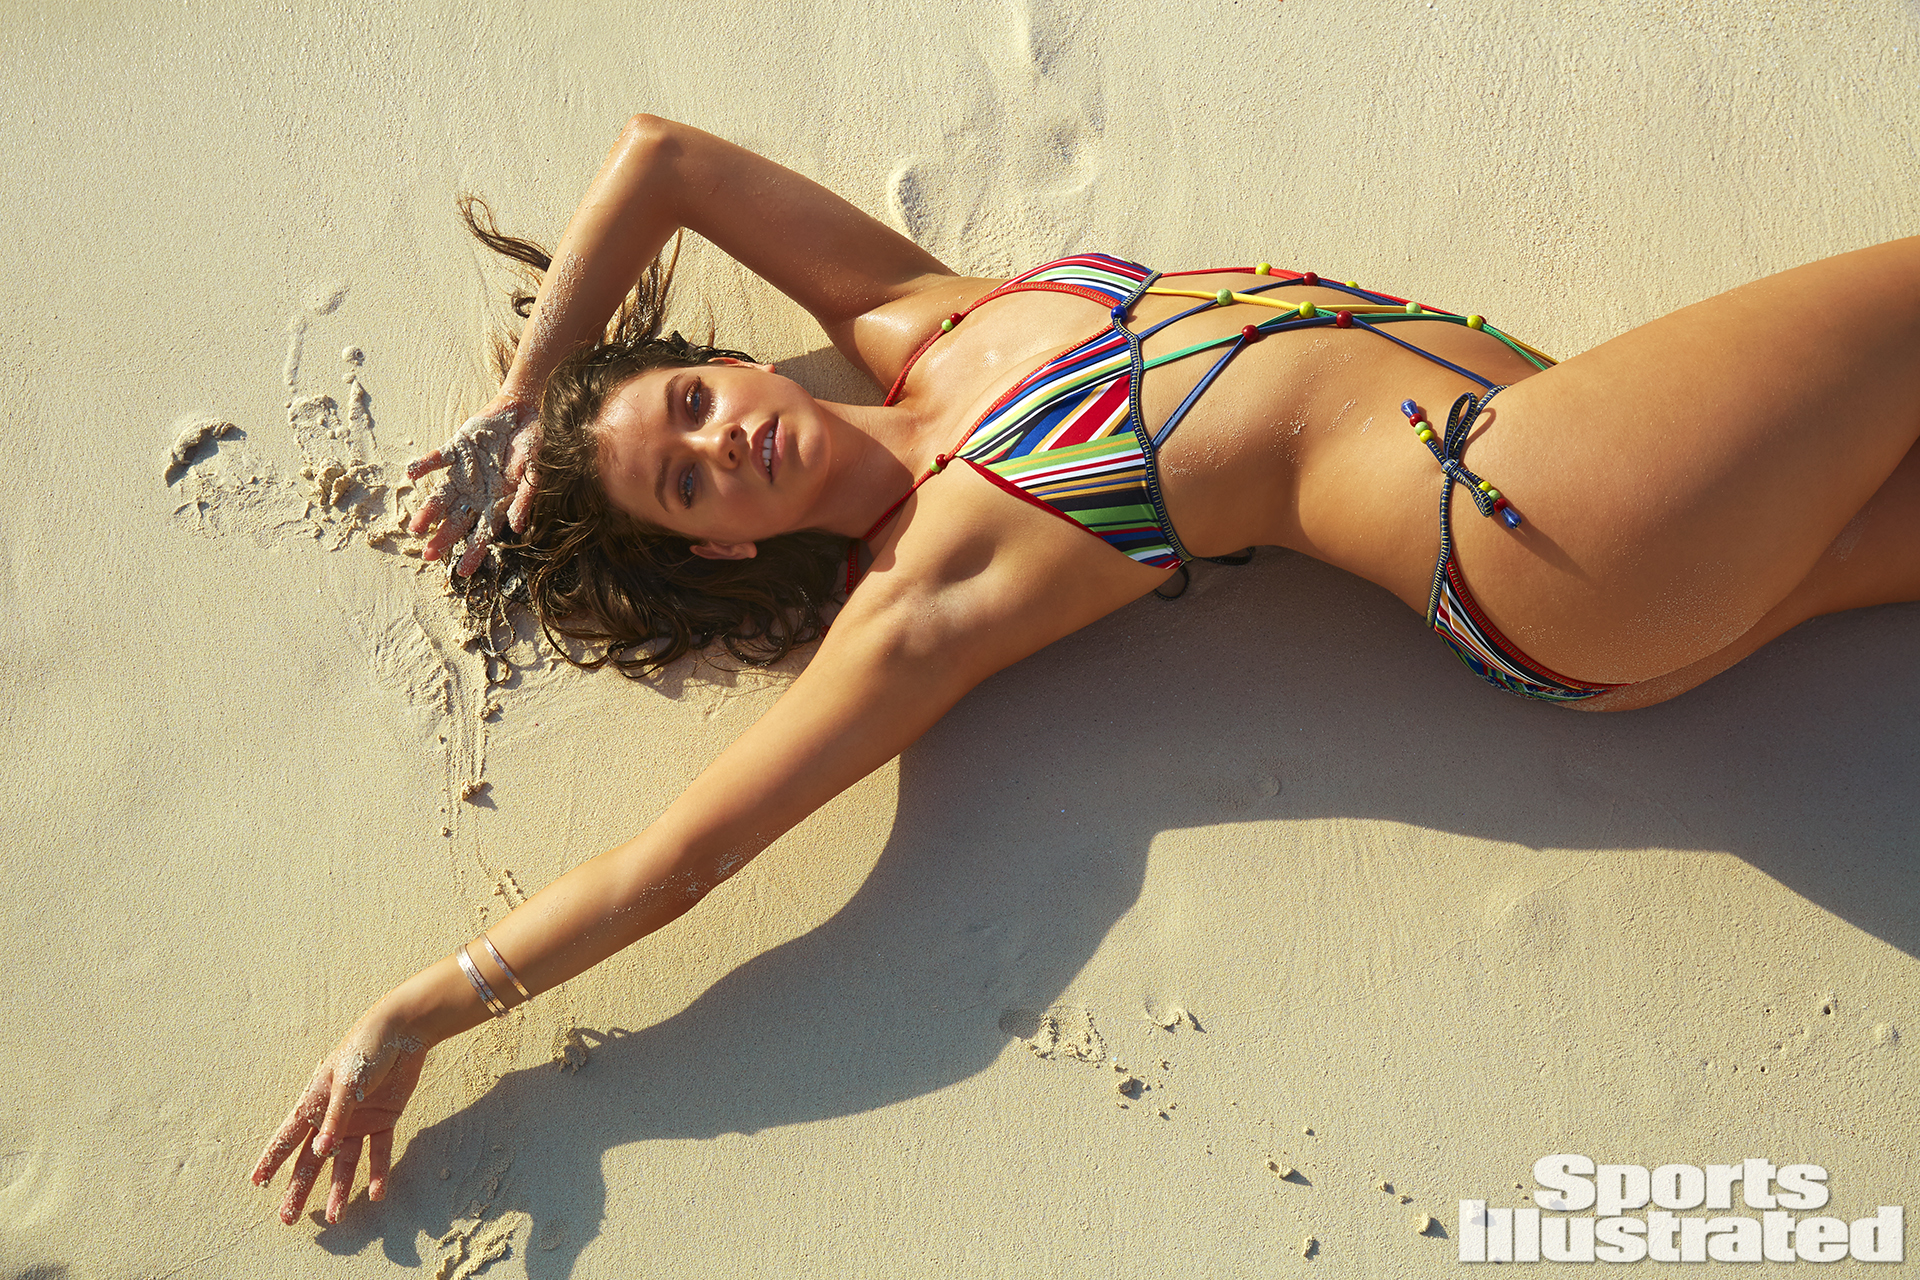 Barbara Palvin was photographed by James Macari in Turks & Caicos. Swimsuit by Hilfiger Collection.